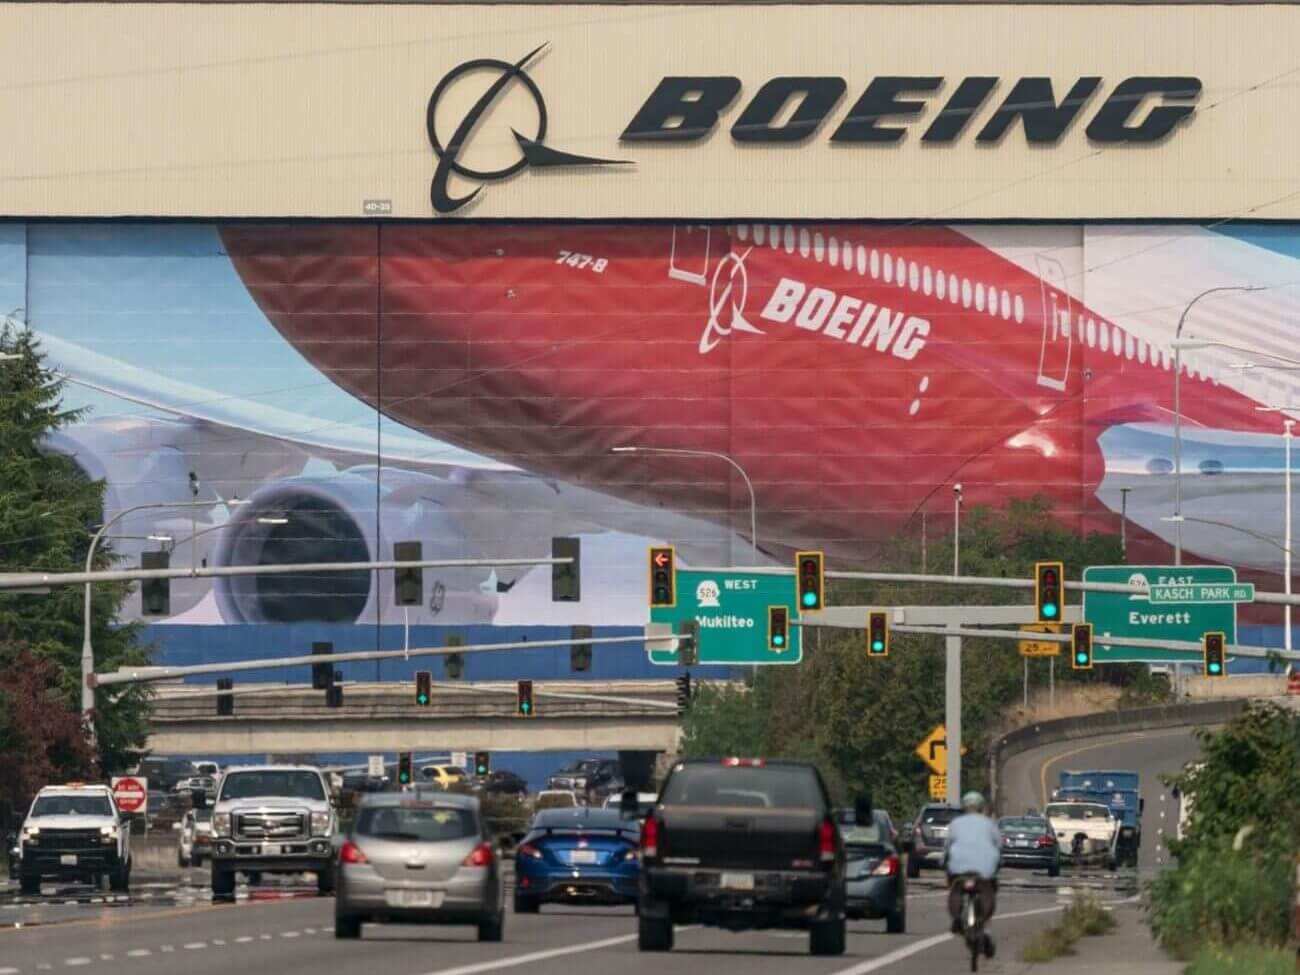 Boeing Is the Most contemporary Company to Flee a Adverse Trade Atmosphere